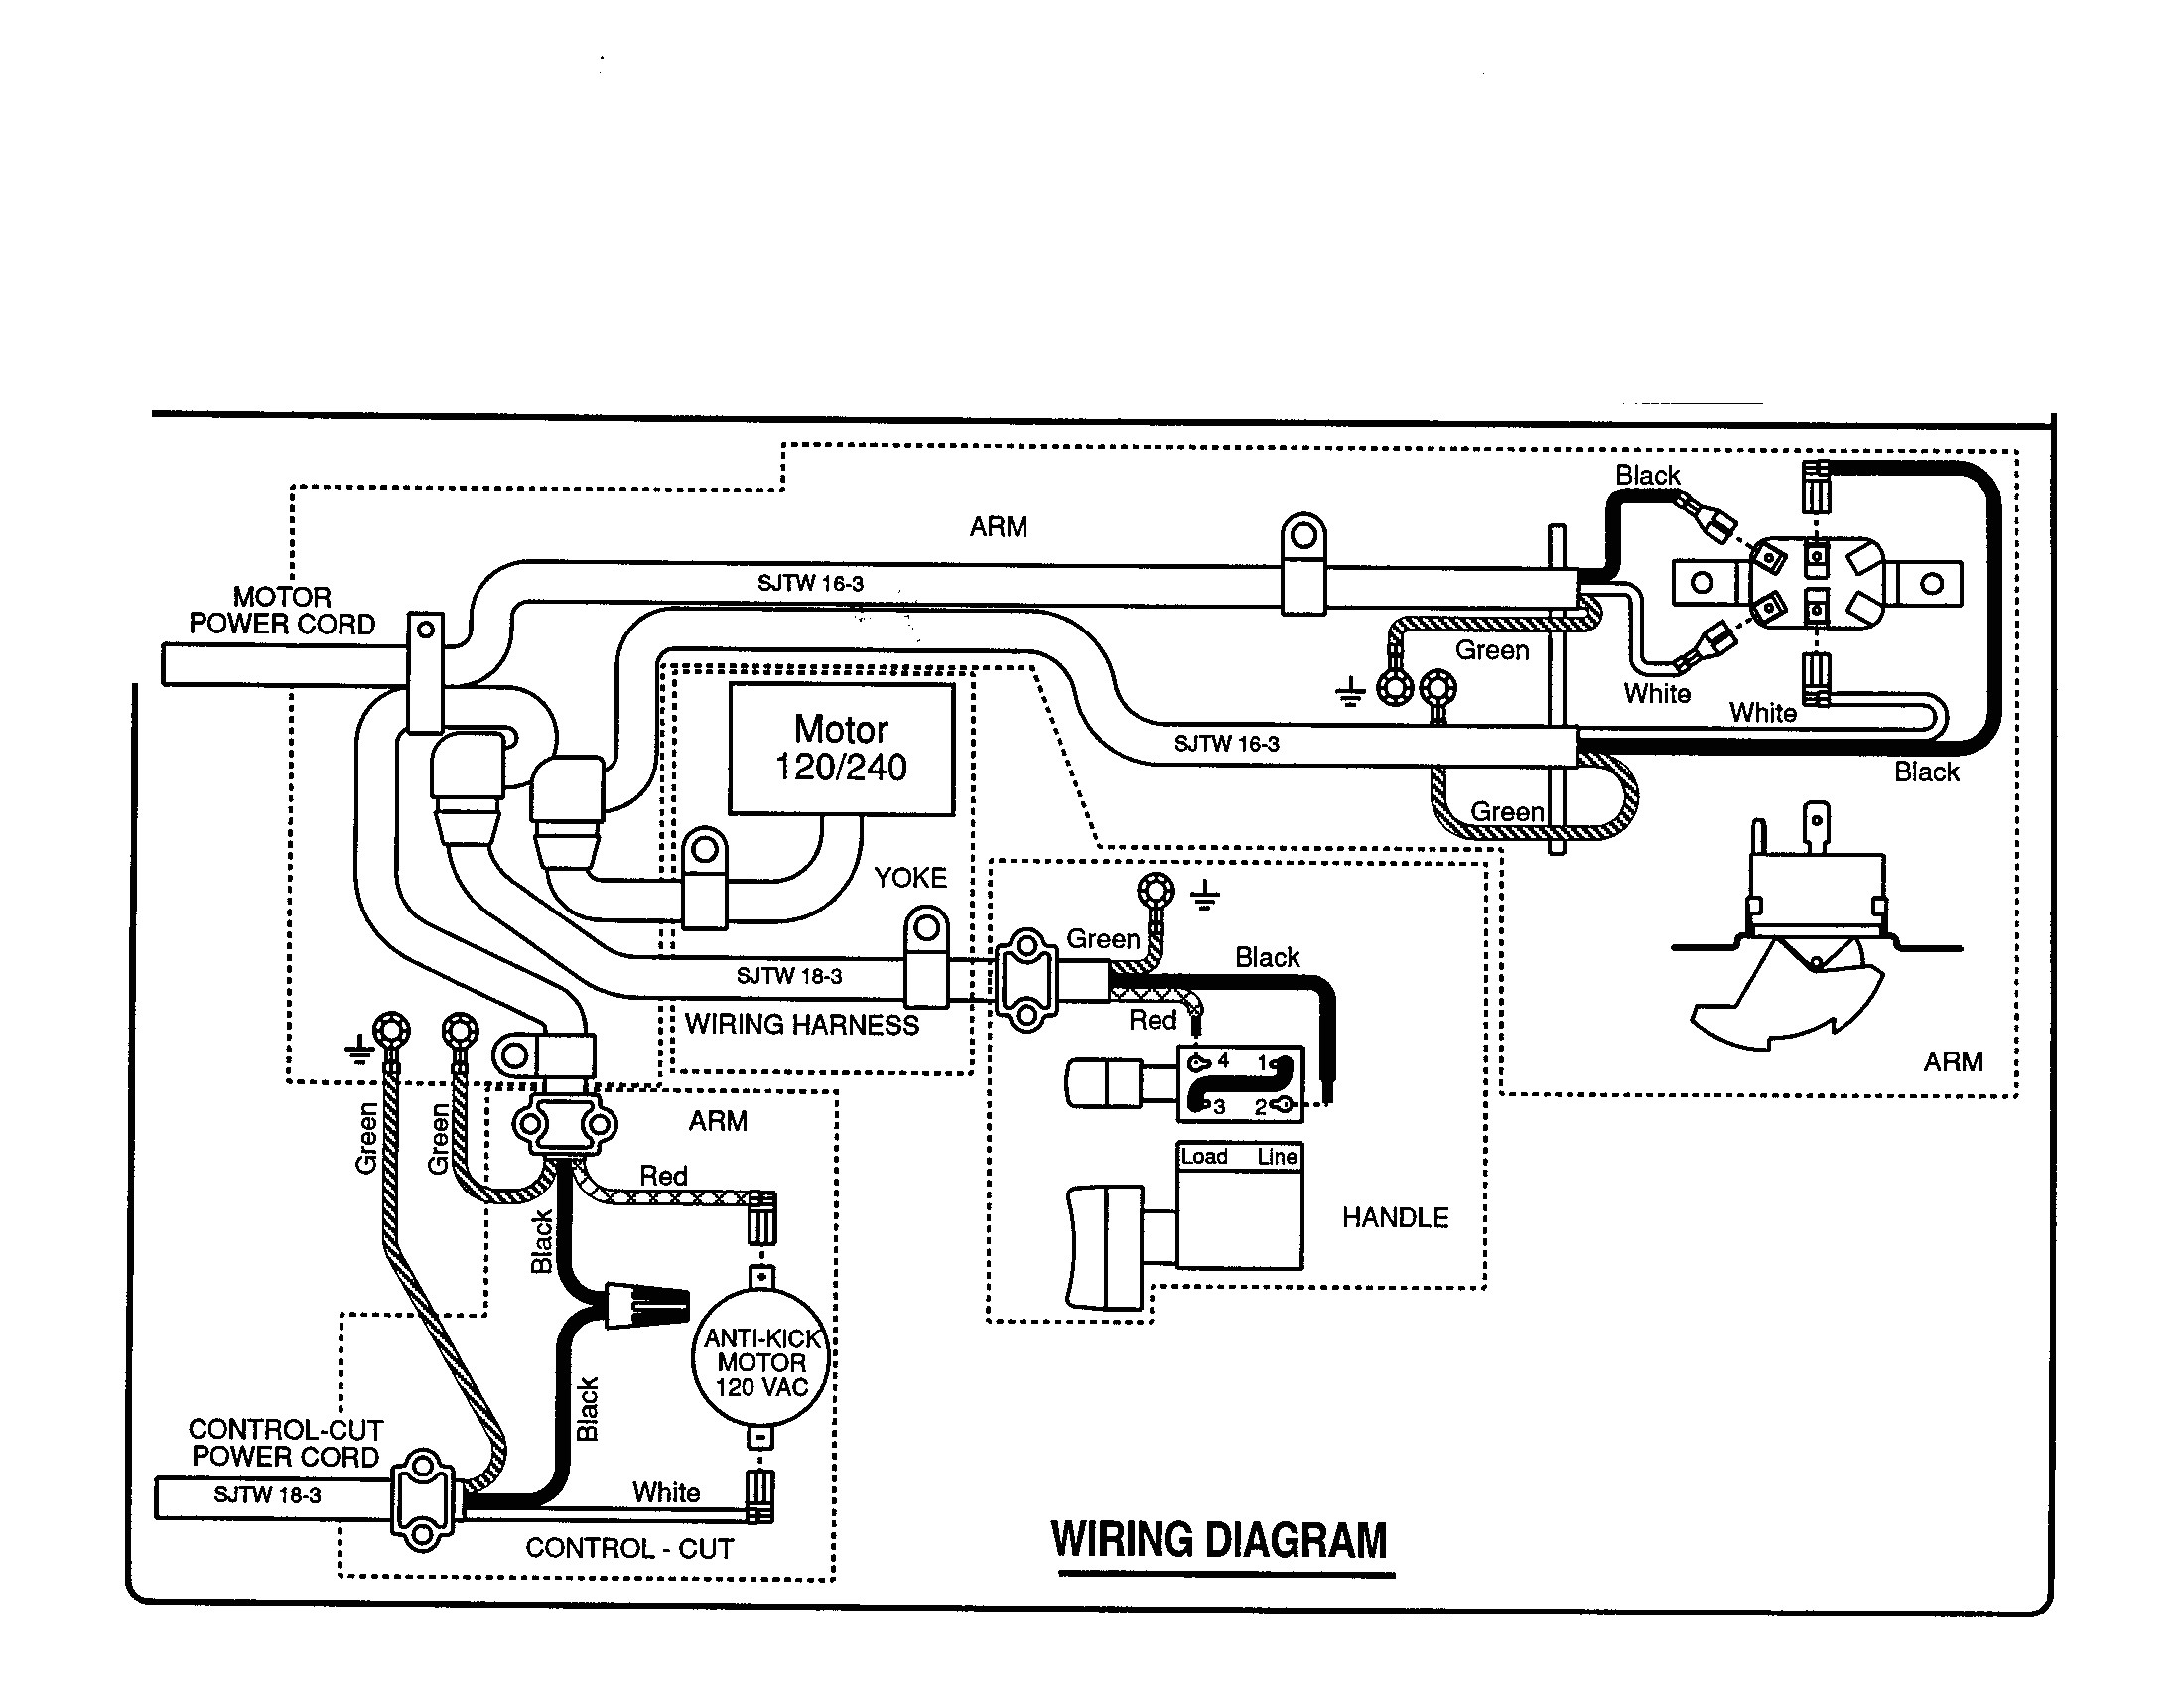 heat pump wiring diagram schematic fresh dorable goodman heat pump wiring diagram schematic vignette of heat